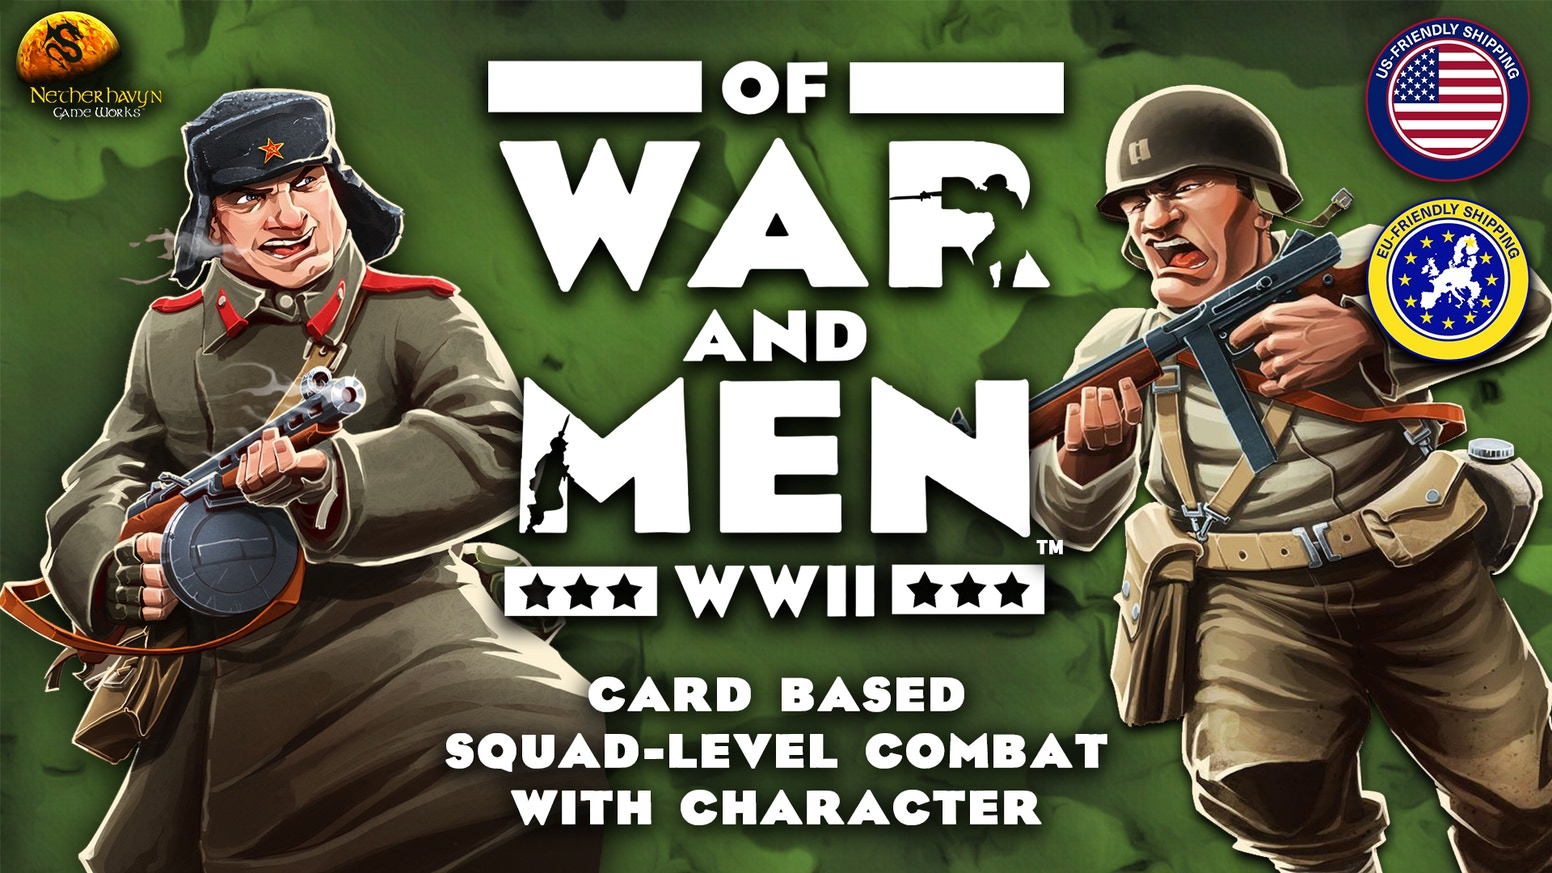 Command unique fire teams. Control the battlefield. Win the war. This is a squad-level, WW2 strategy card game for 2-4 players.